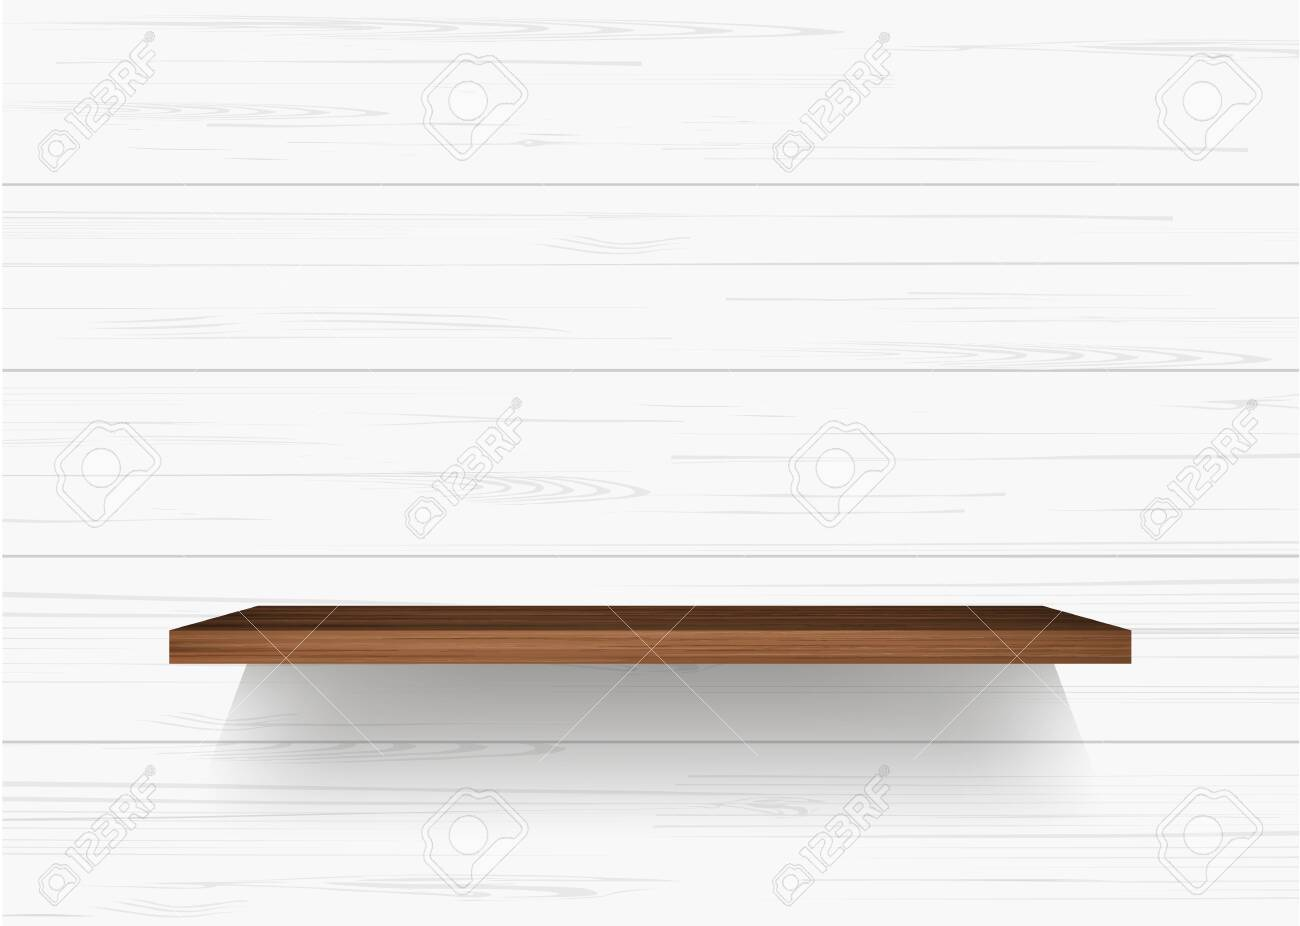 Wooden shelf on white wooden wall background with soft shadow. Vector illustration. - 156186279